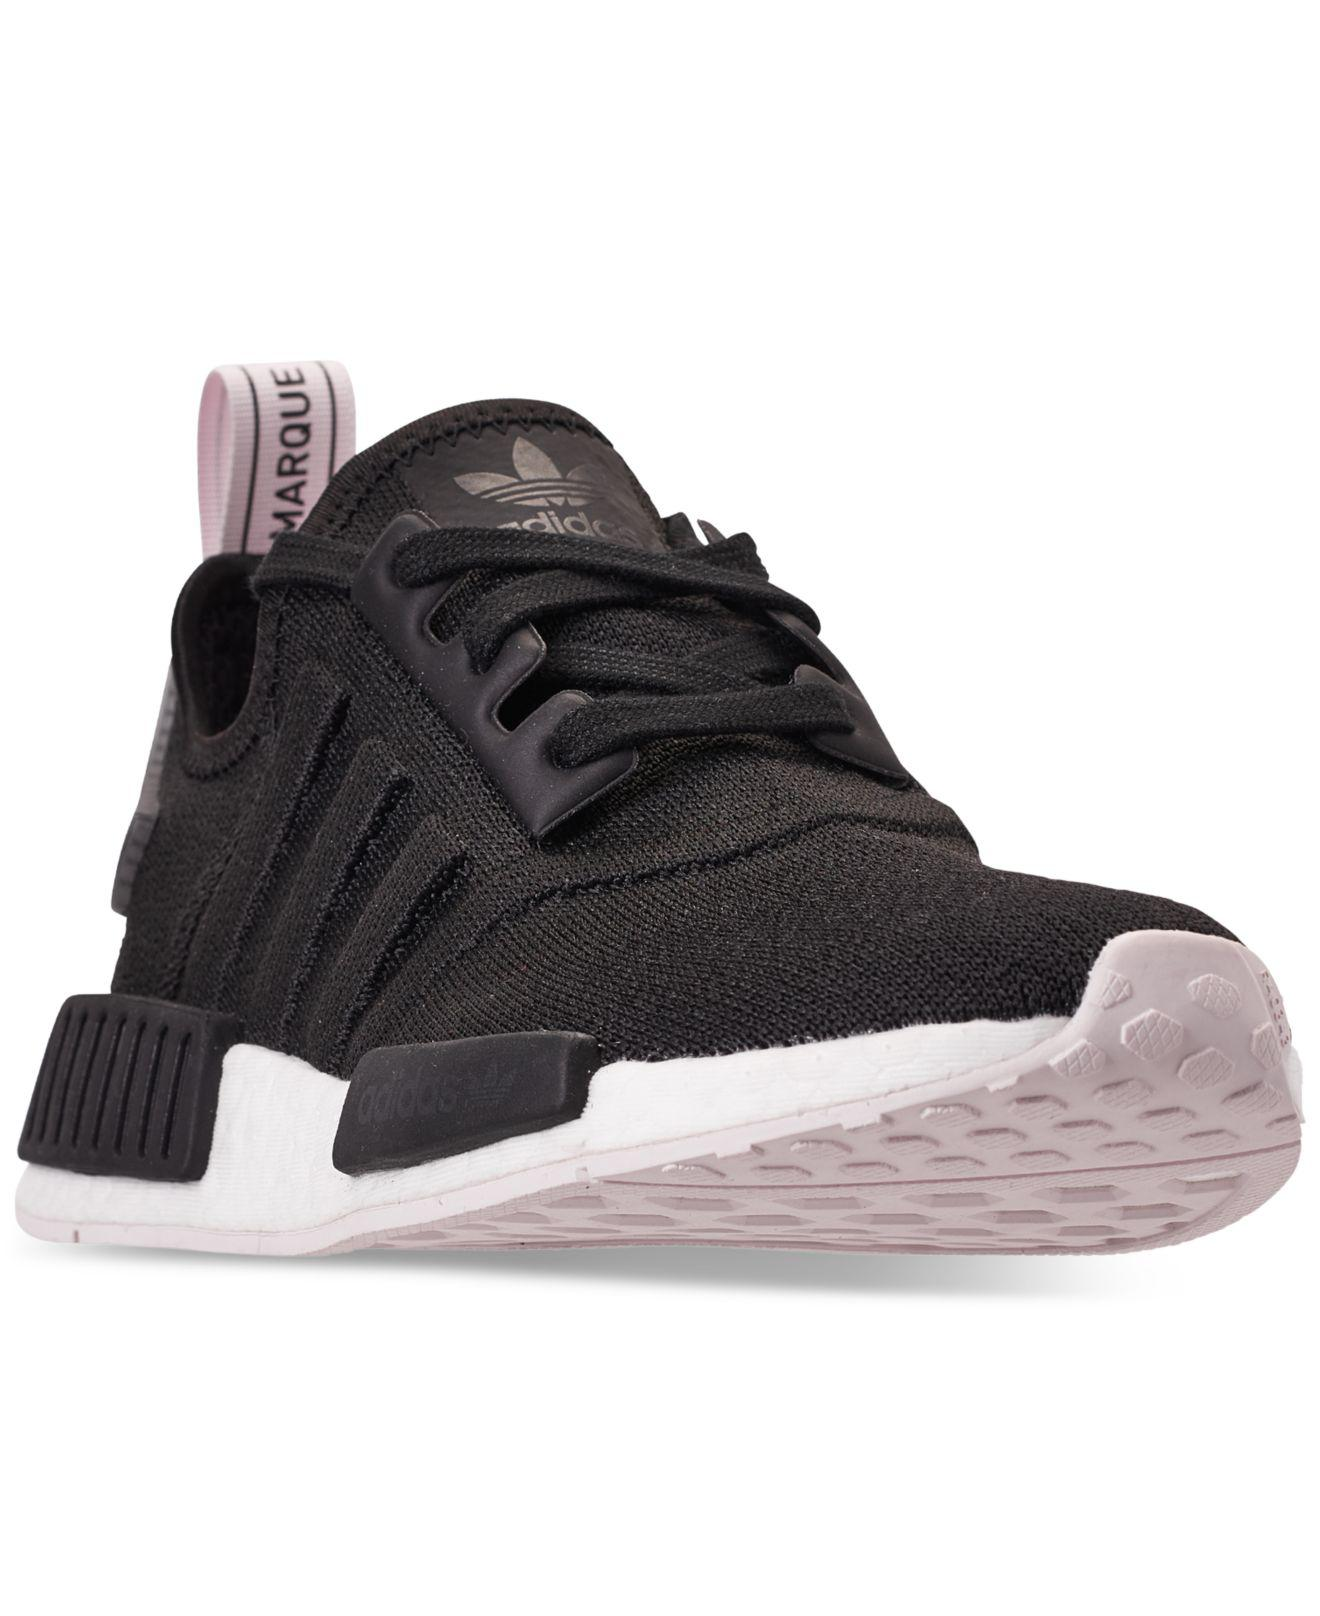 cafe2f7a4f7036 Lyst - adidas Nmd R1 Casual Sneakers From Finish Line in Black